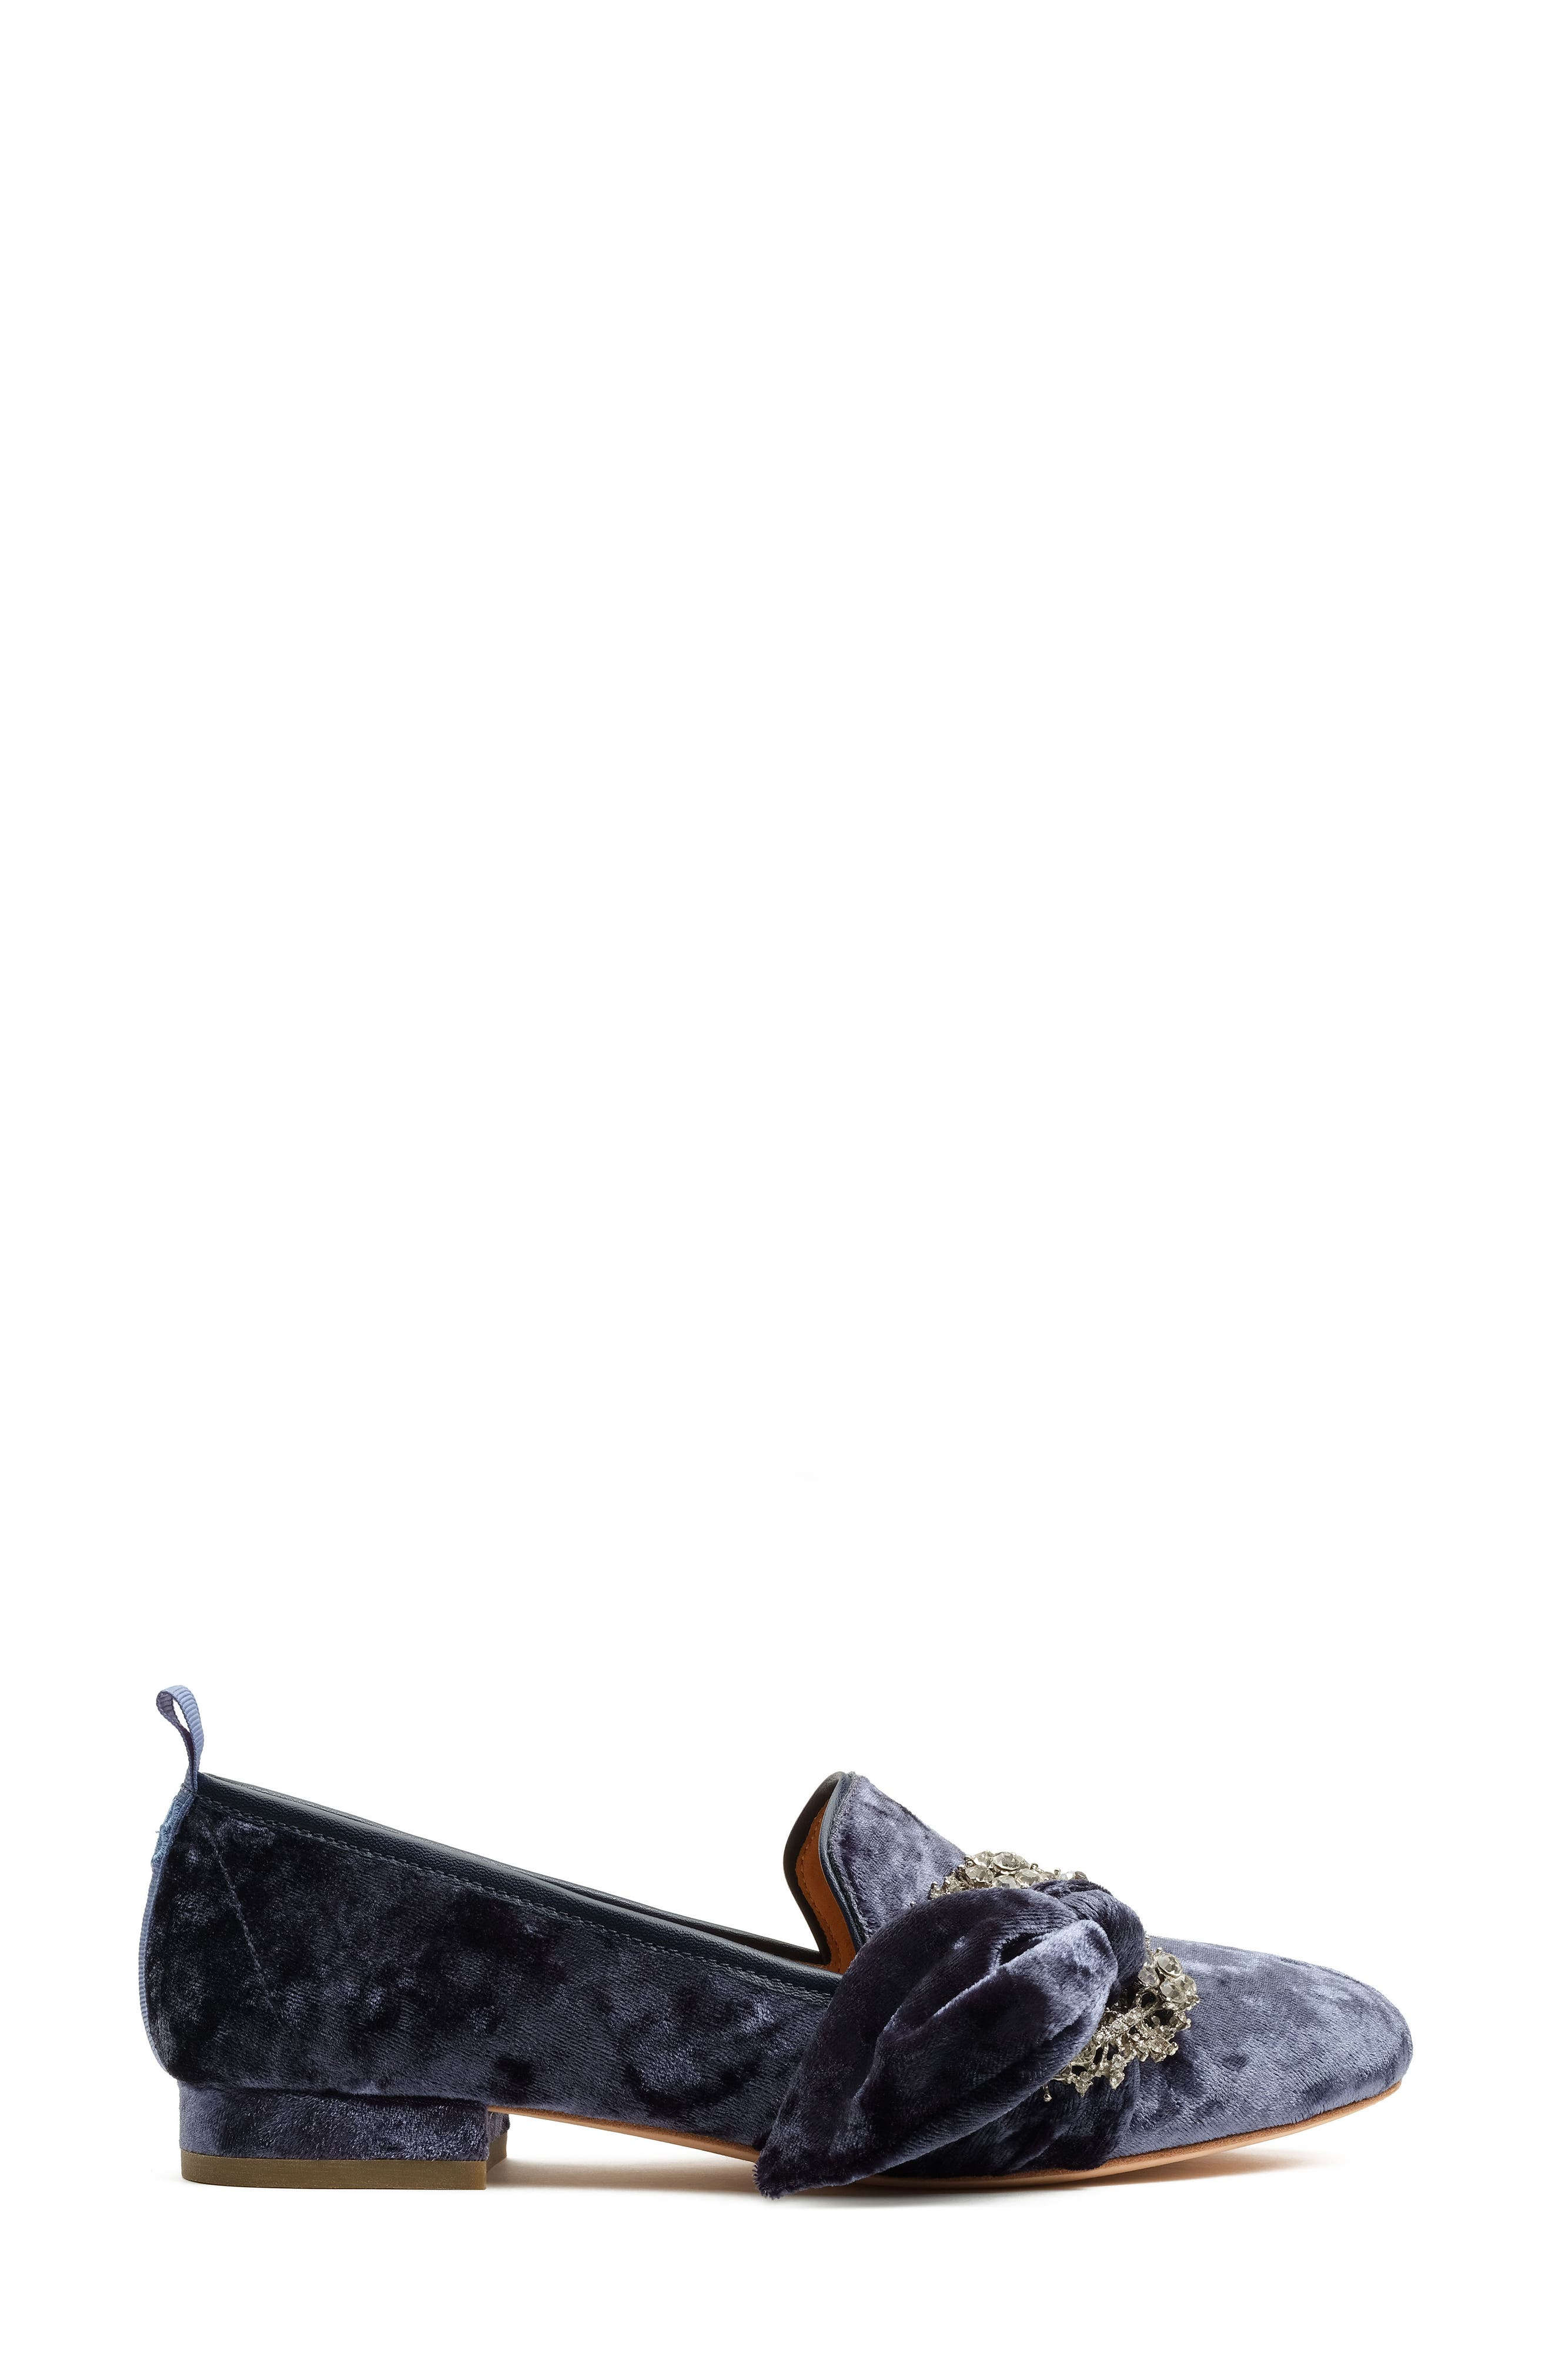 Alternate Image 3  - Bill Blass Laverne Embellished Loafer (Women)